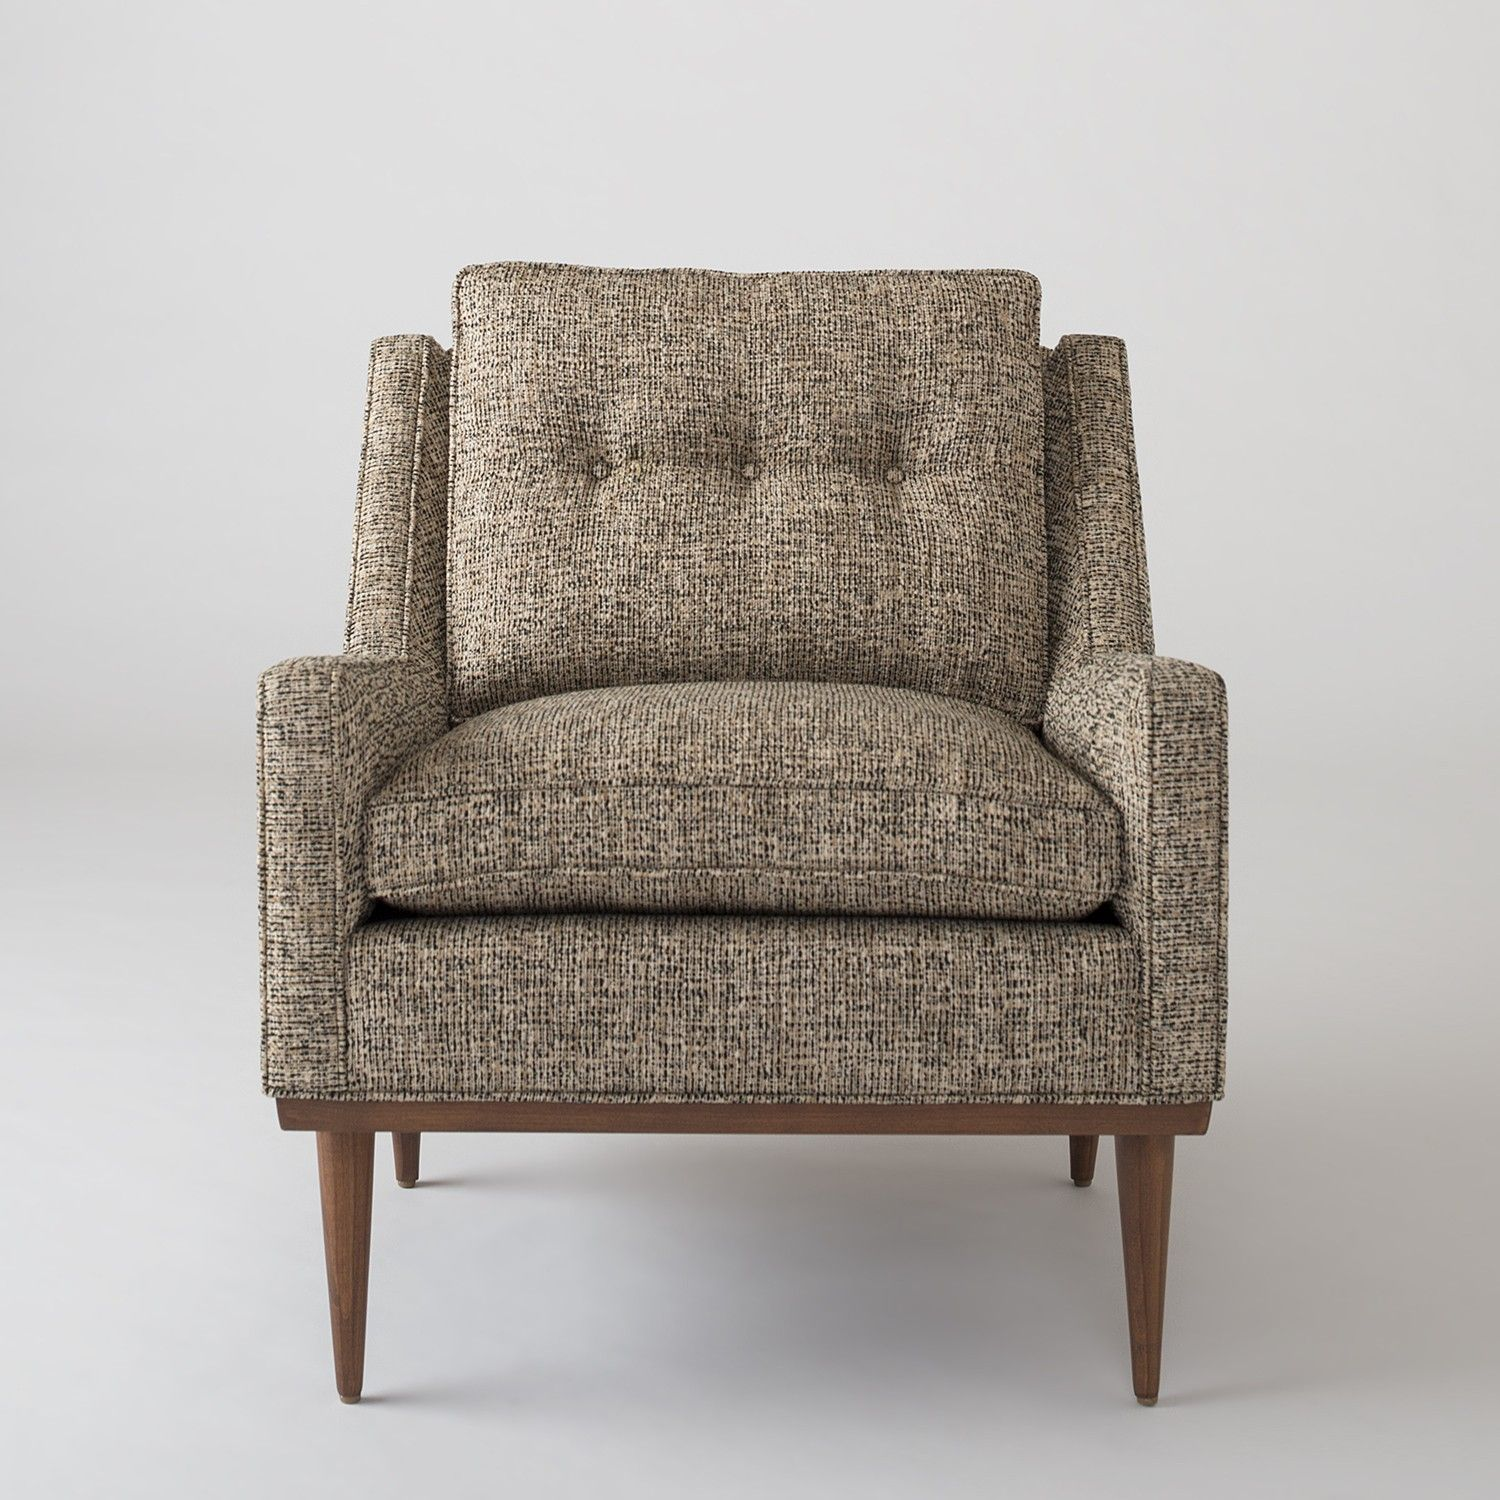 Classic Sofas Loveseats Couches And Chairs Furniture